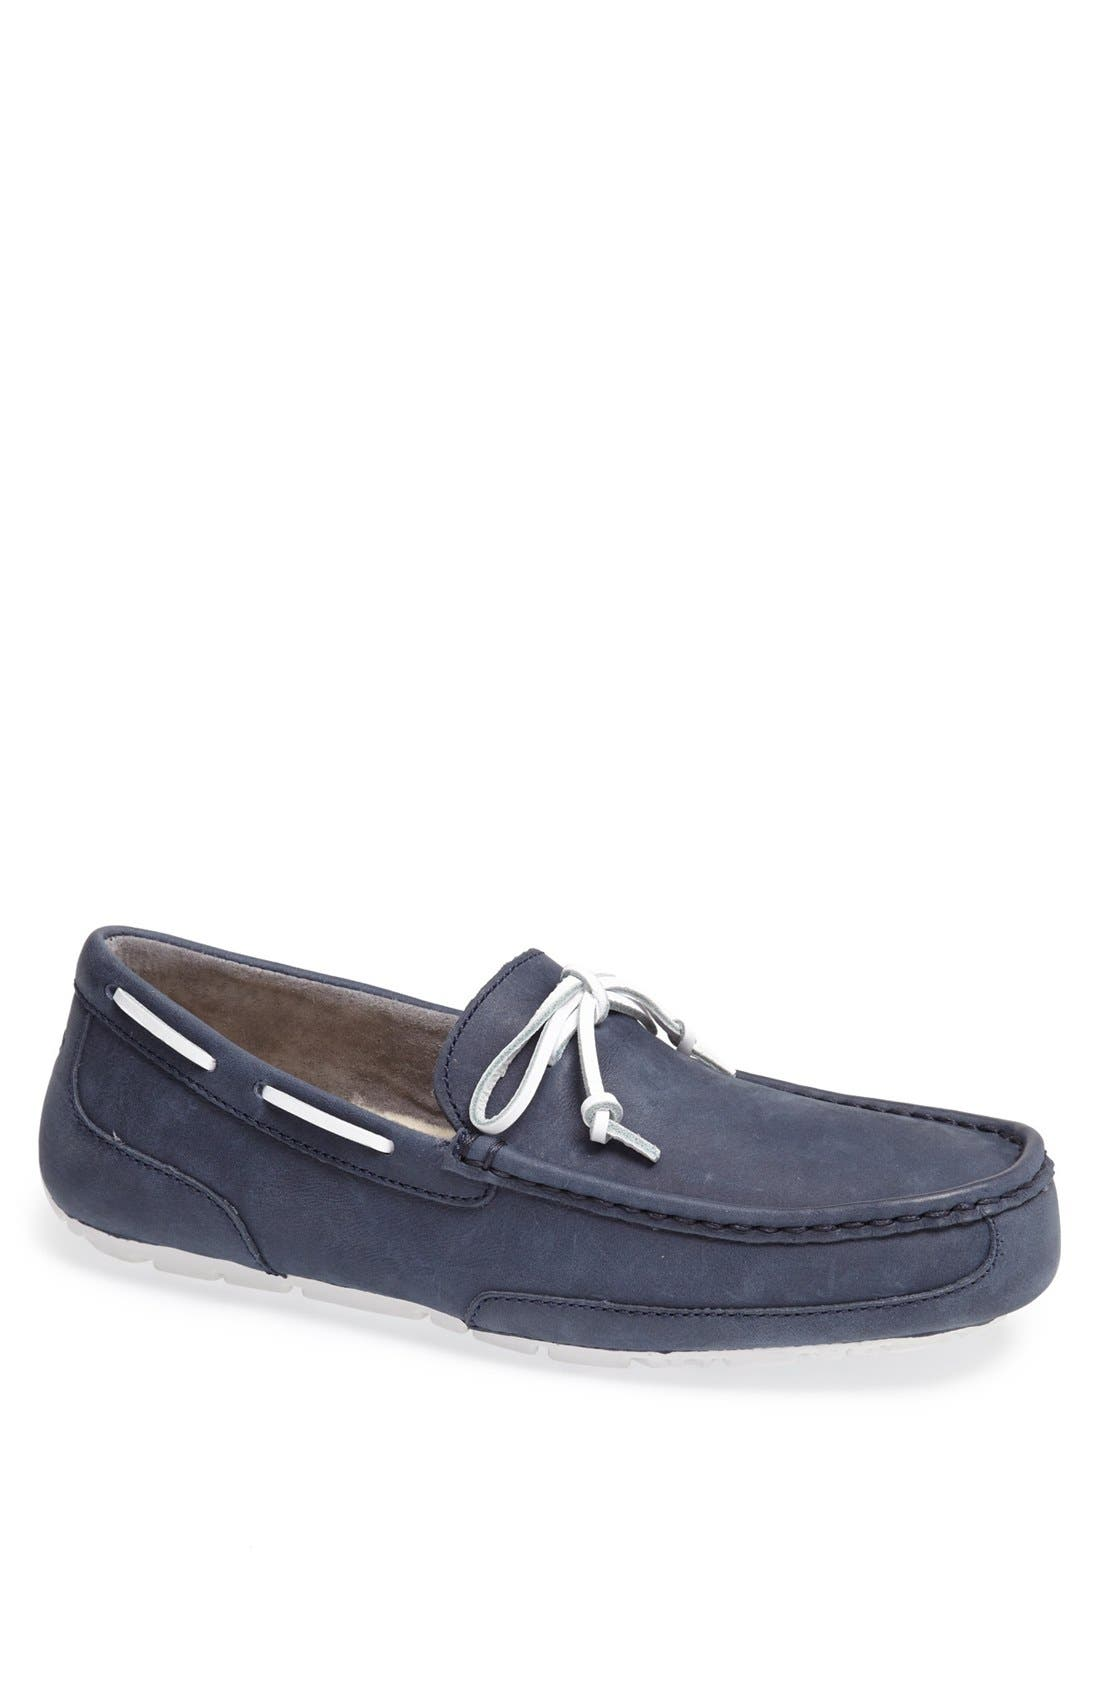 'Chester' Driving Loafer,                             Main thumbnail 7, color,